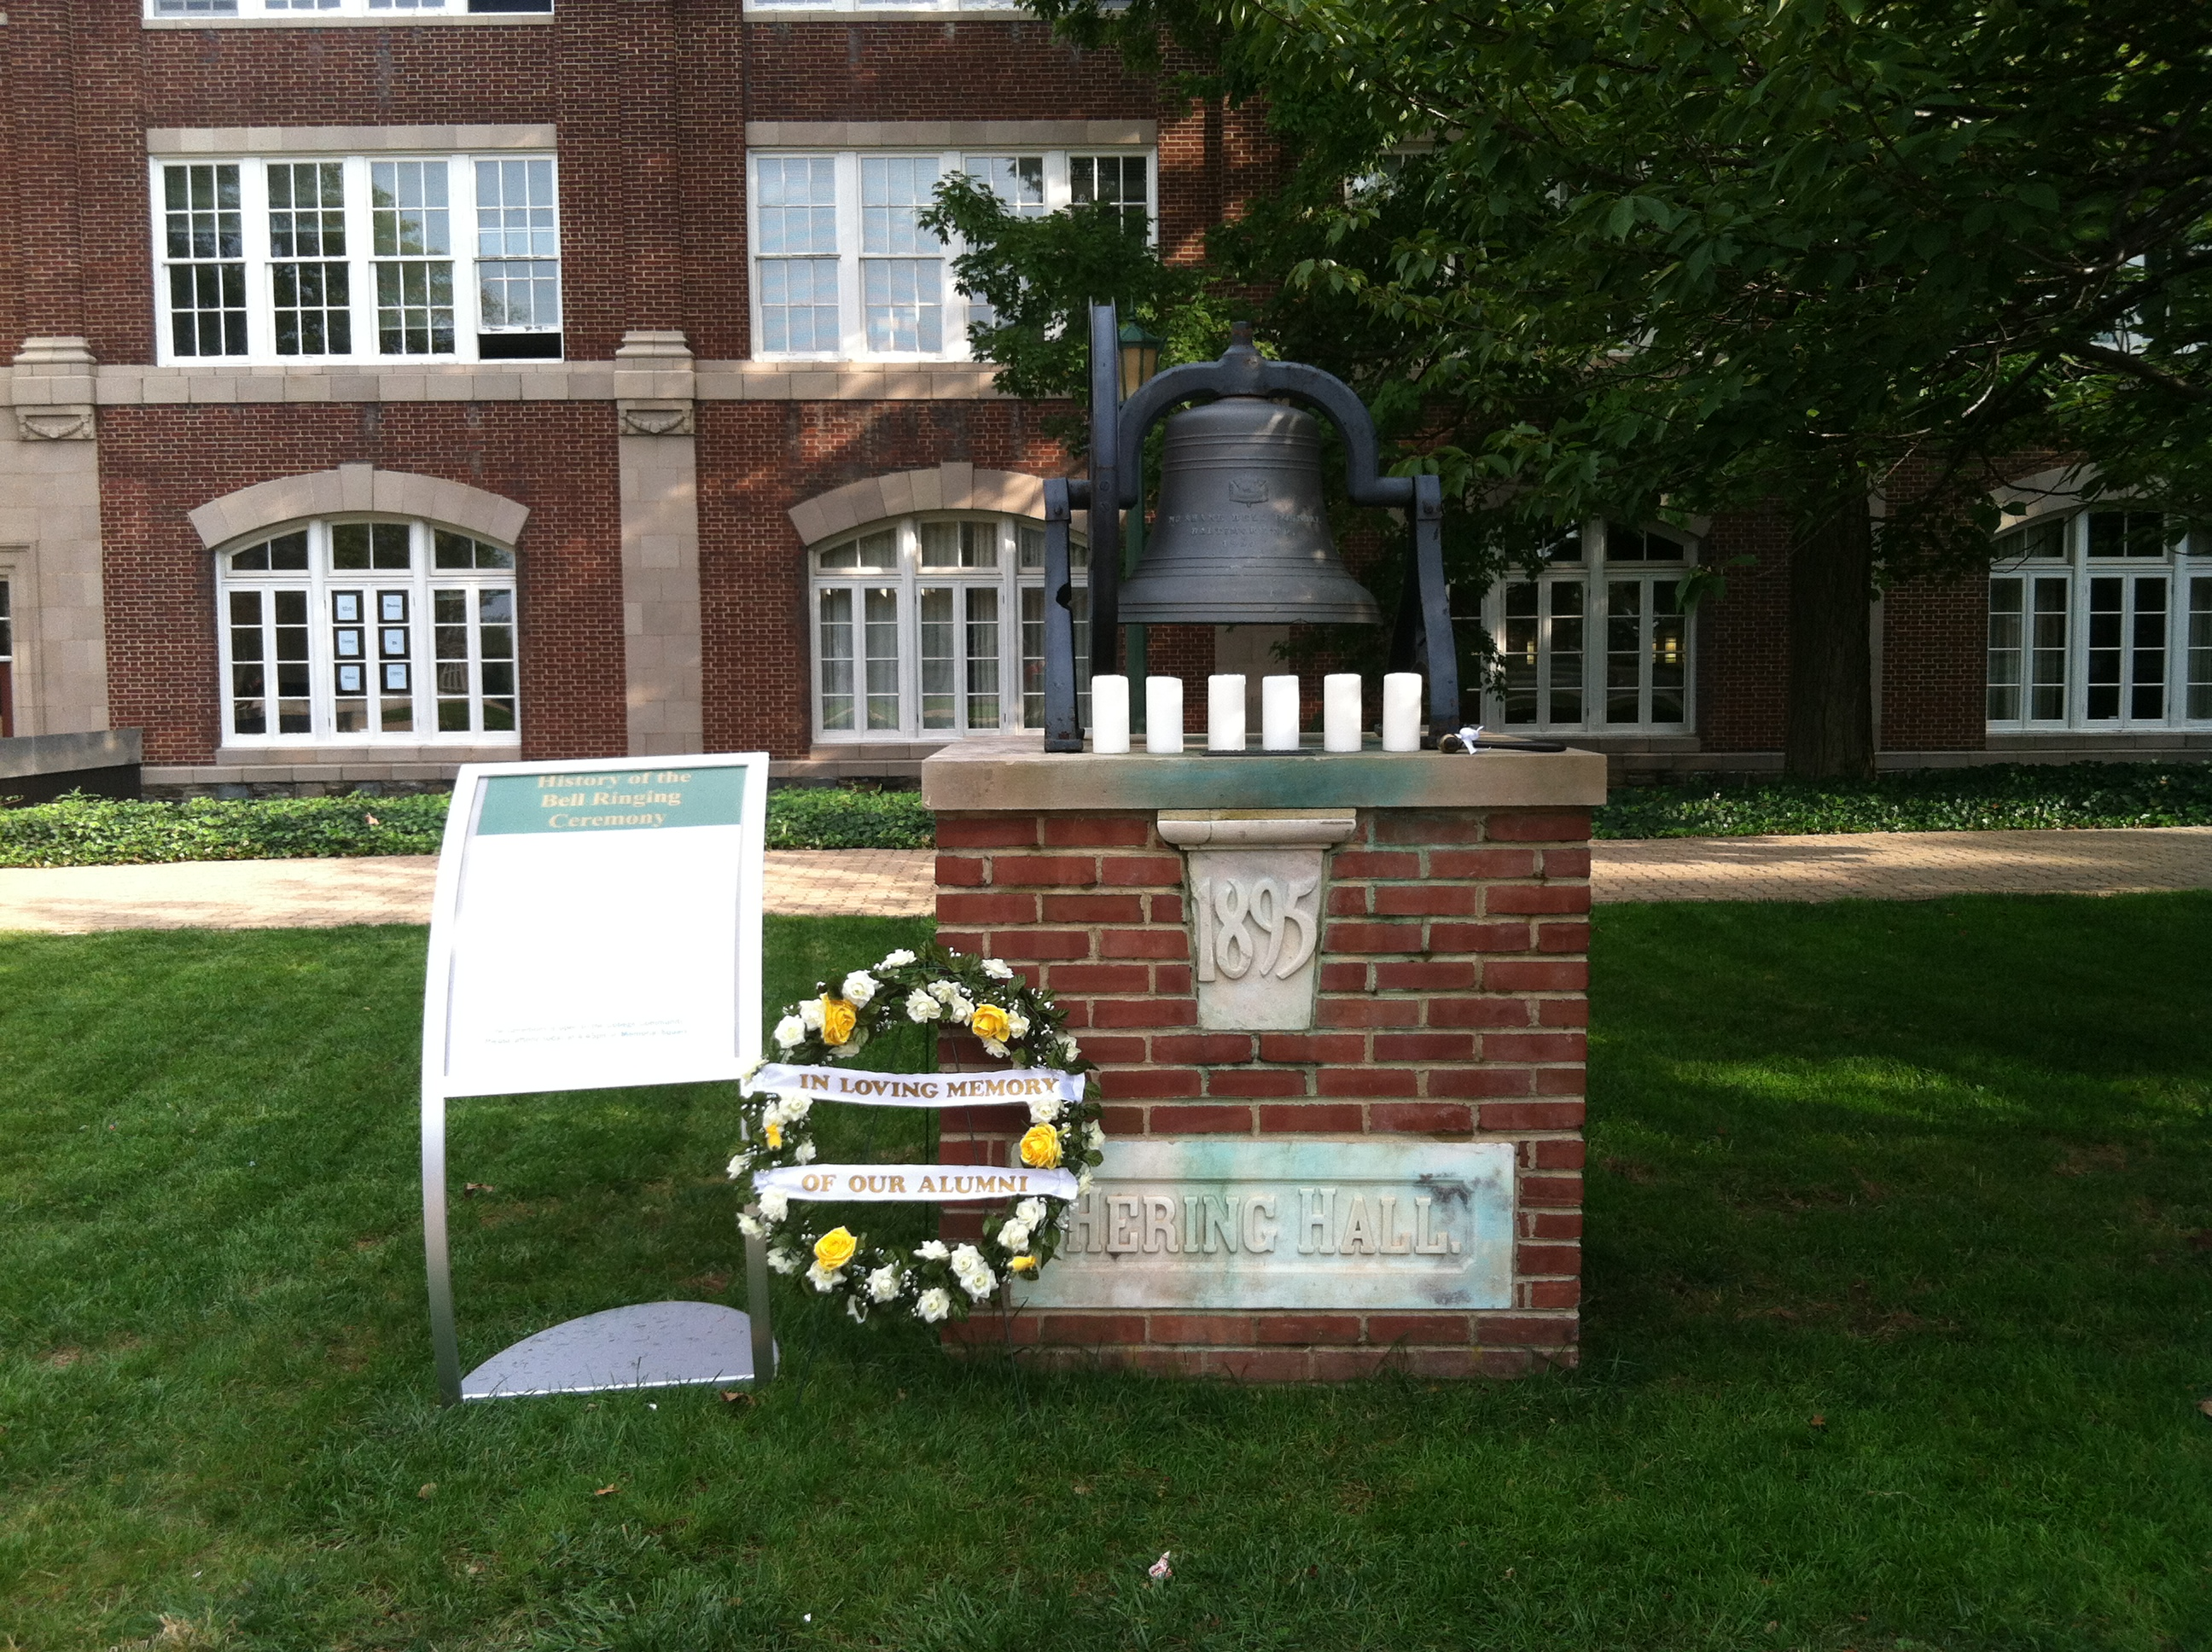 The main bell in red square was decorated to commemorate McDaniel alumni who have passed away in the last six decades.